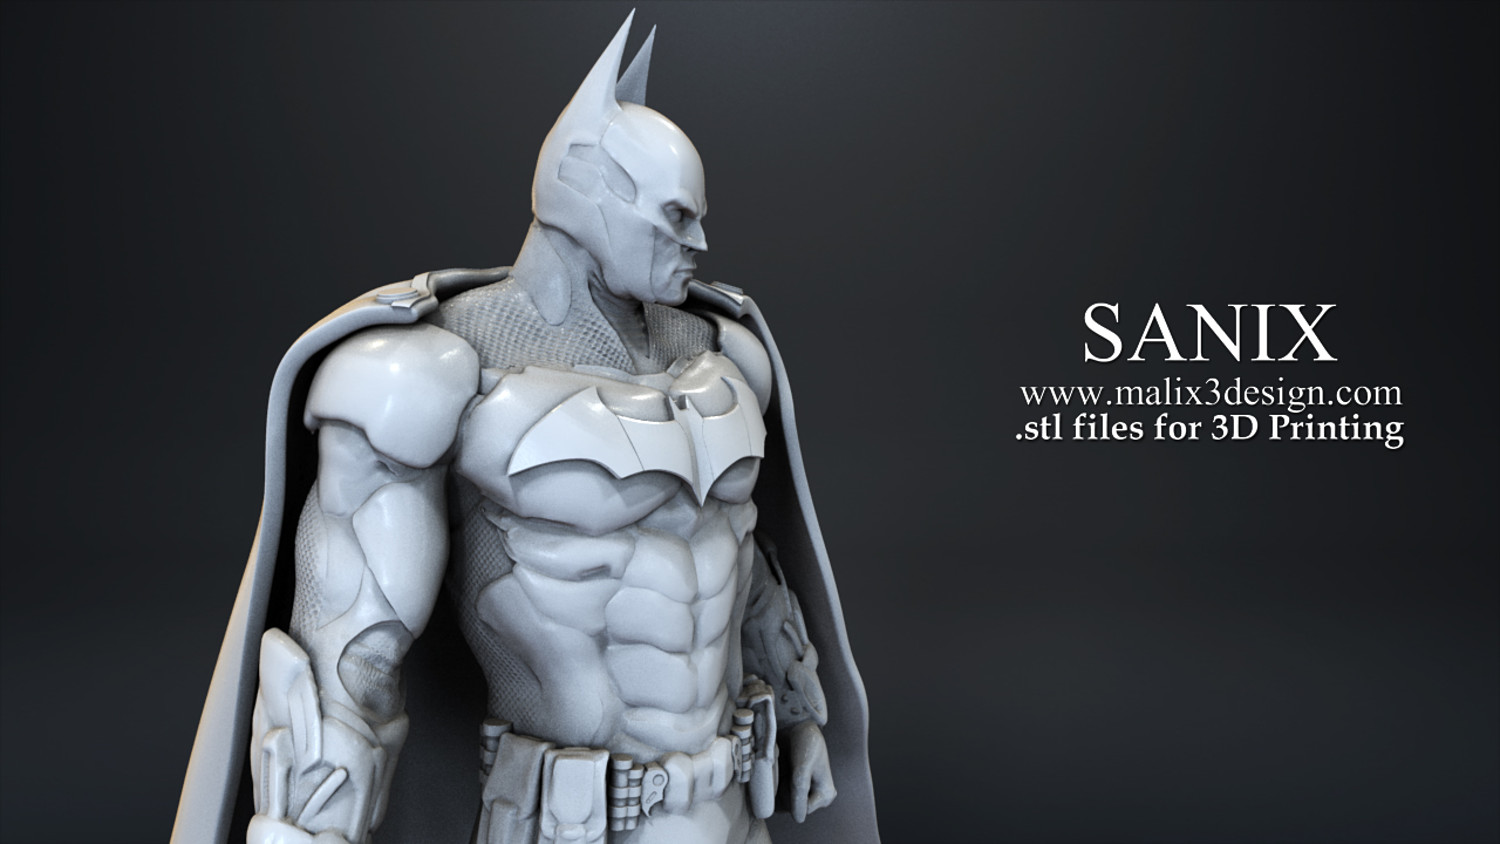 Justice League - 6 characters for 3D Printing